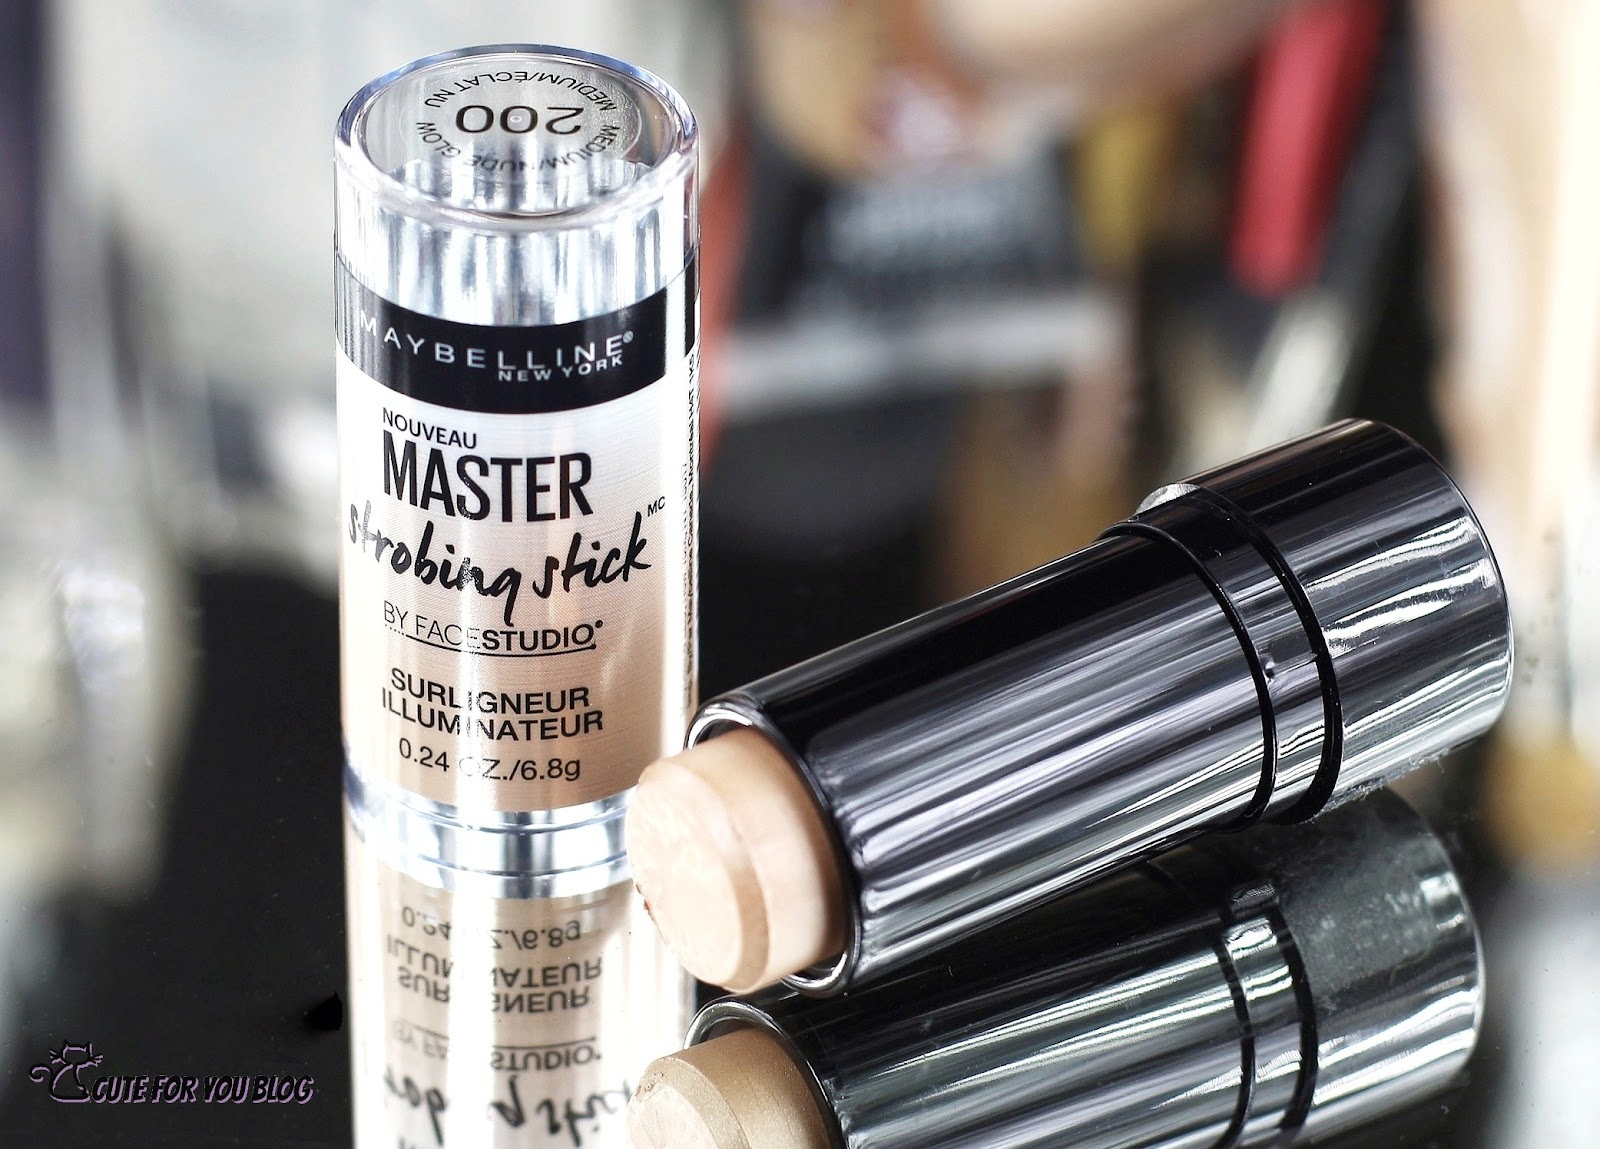 maybelline, beauty blogger argentina, bblogger, blogger, blog de maquillaje, blog de belleza, blog argentino de belleza, cute for you, cute for you karolina luke, master strobing stick